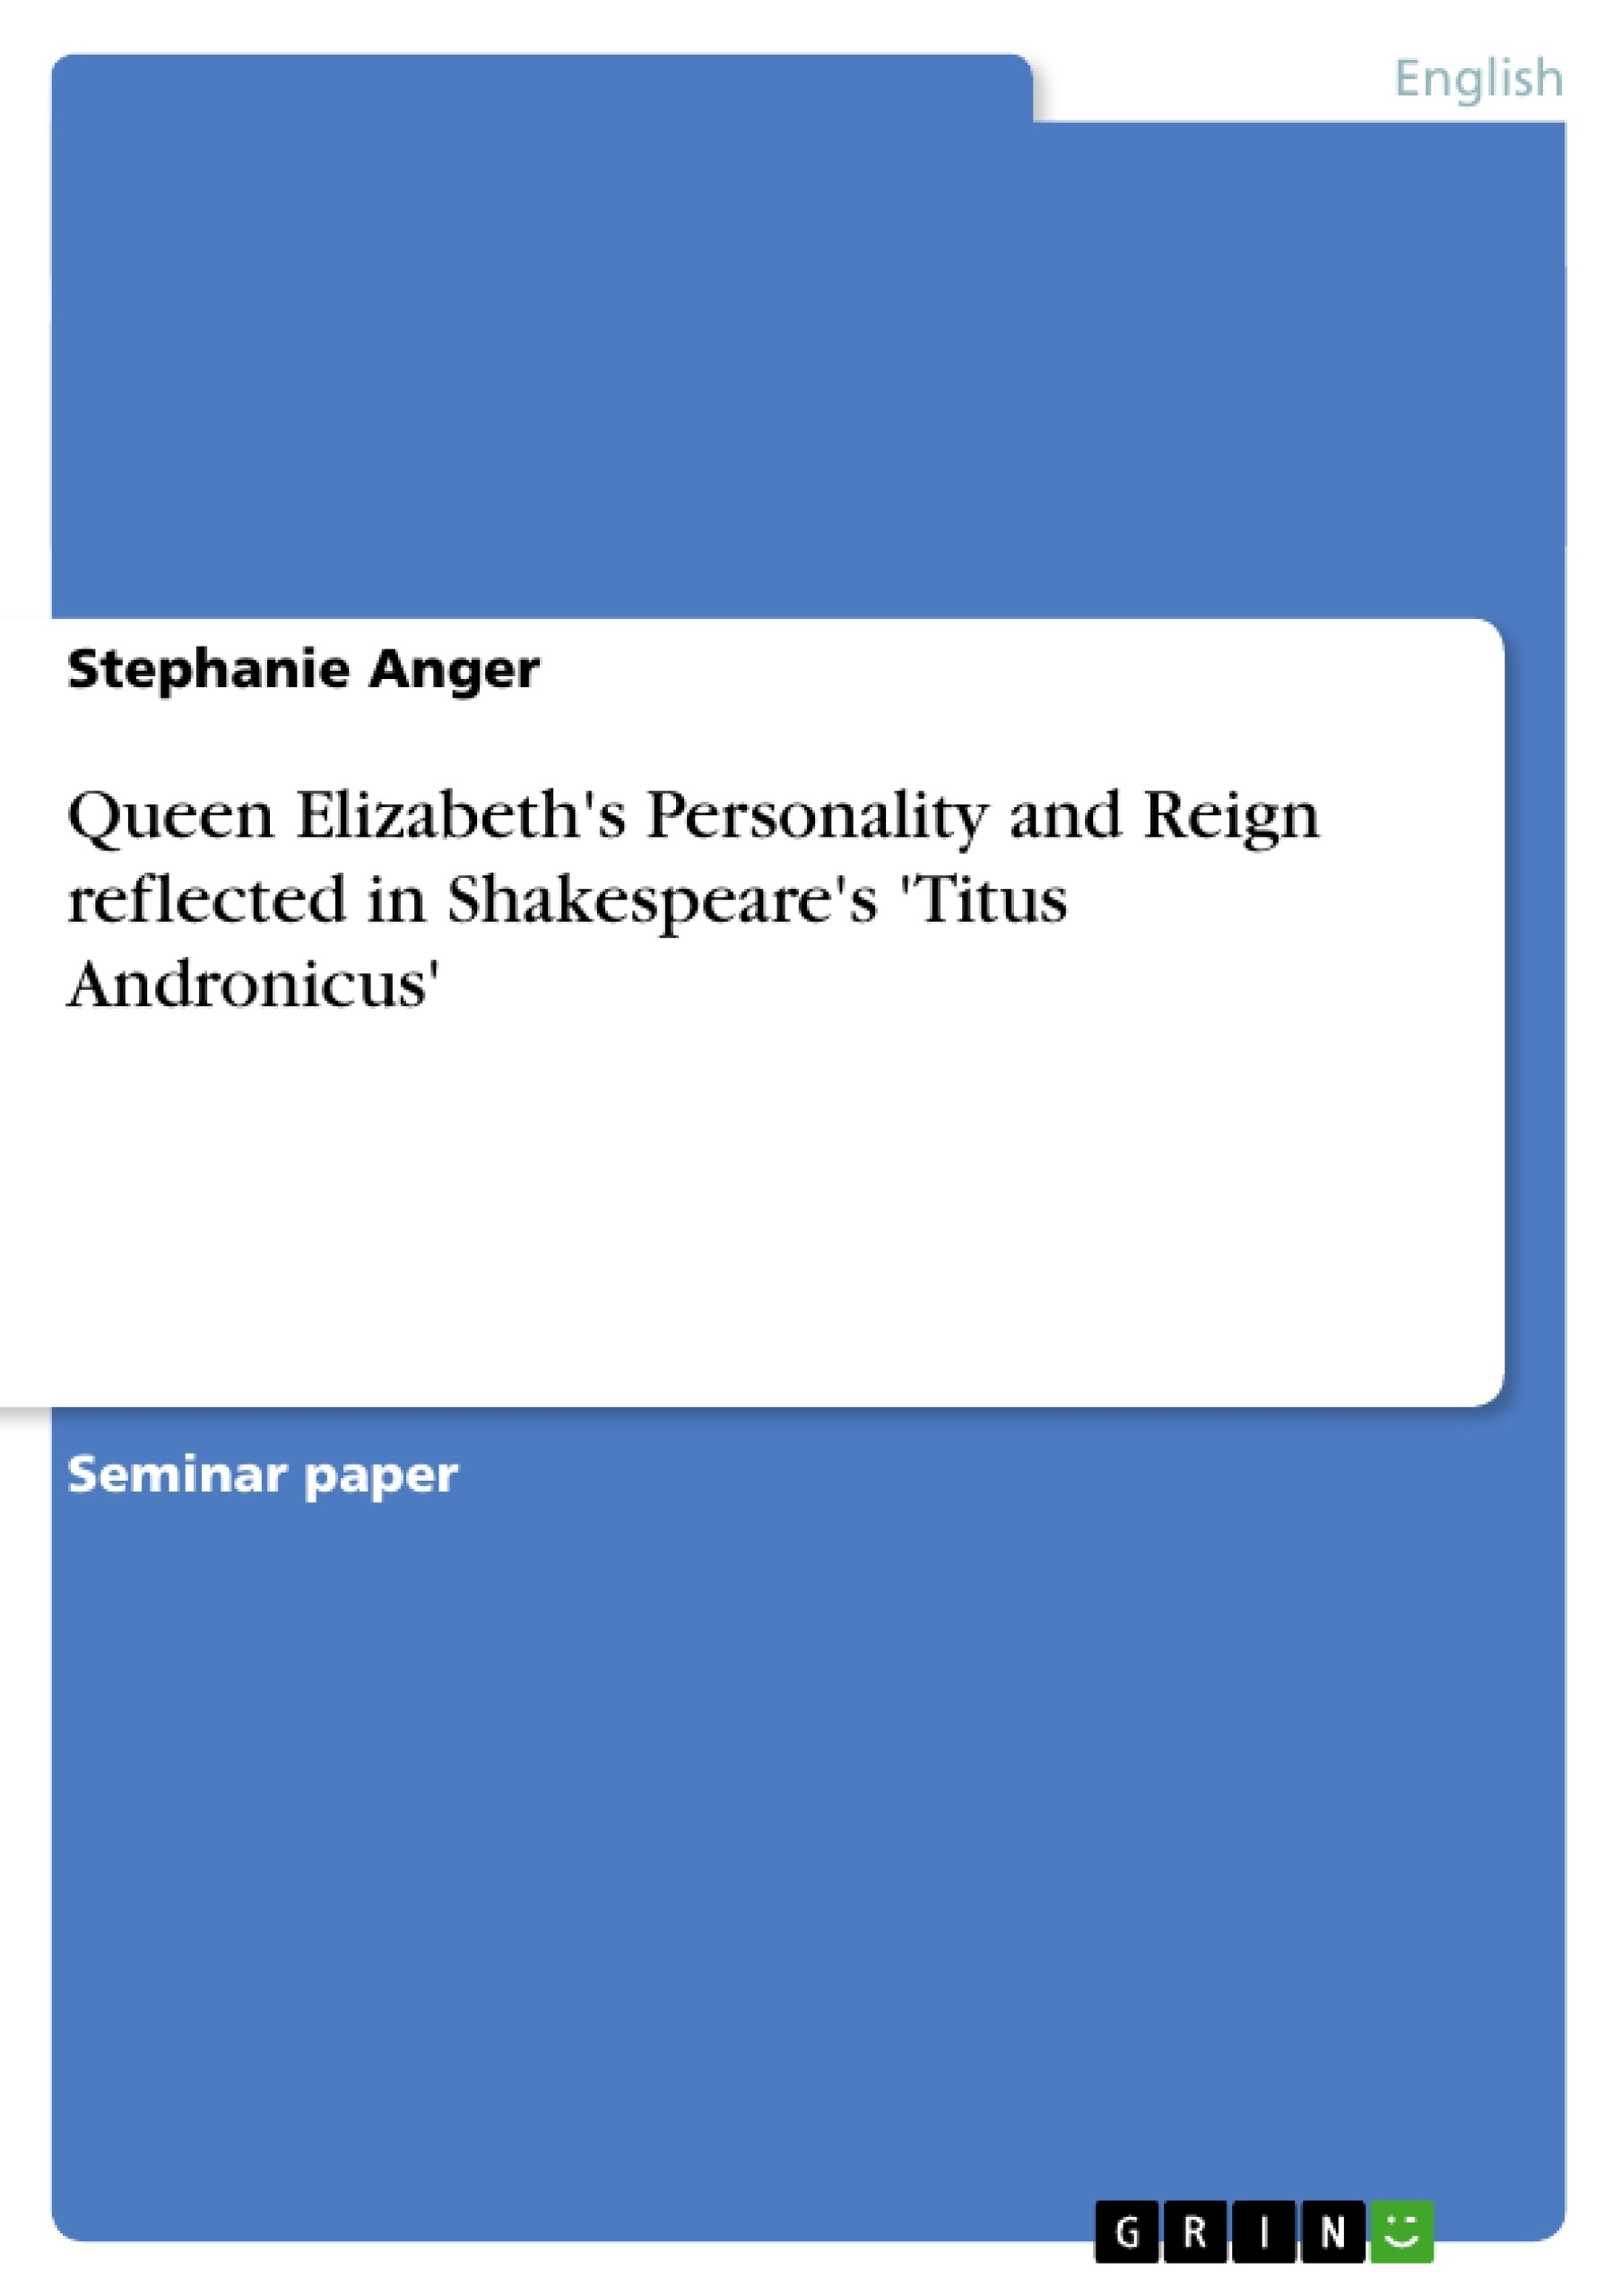 Title: Queen Elizabeth's  Personality and Reign reflected in Shakespeare's 'Titus Andronicus'